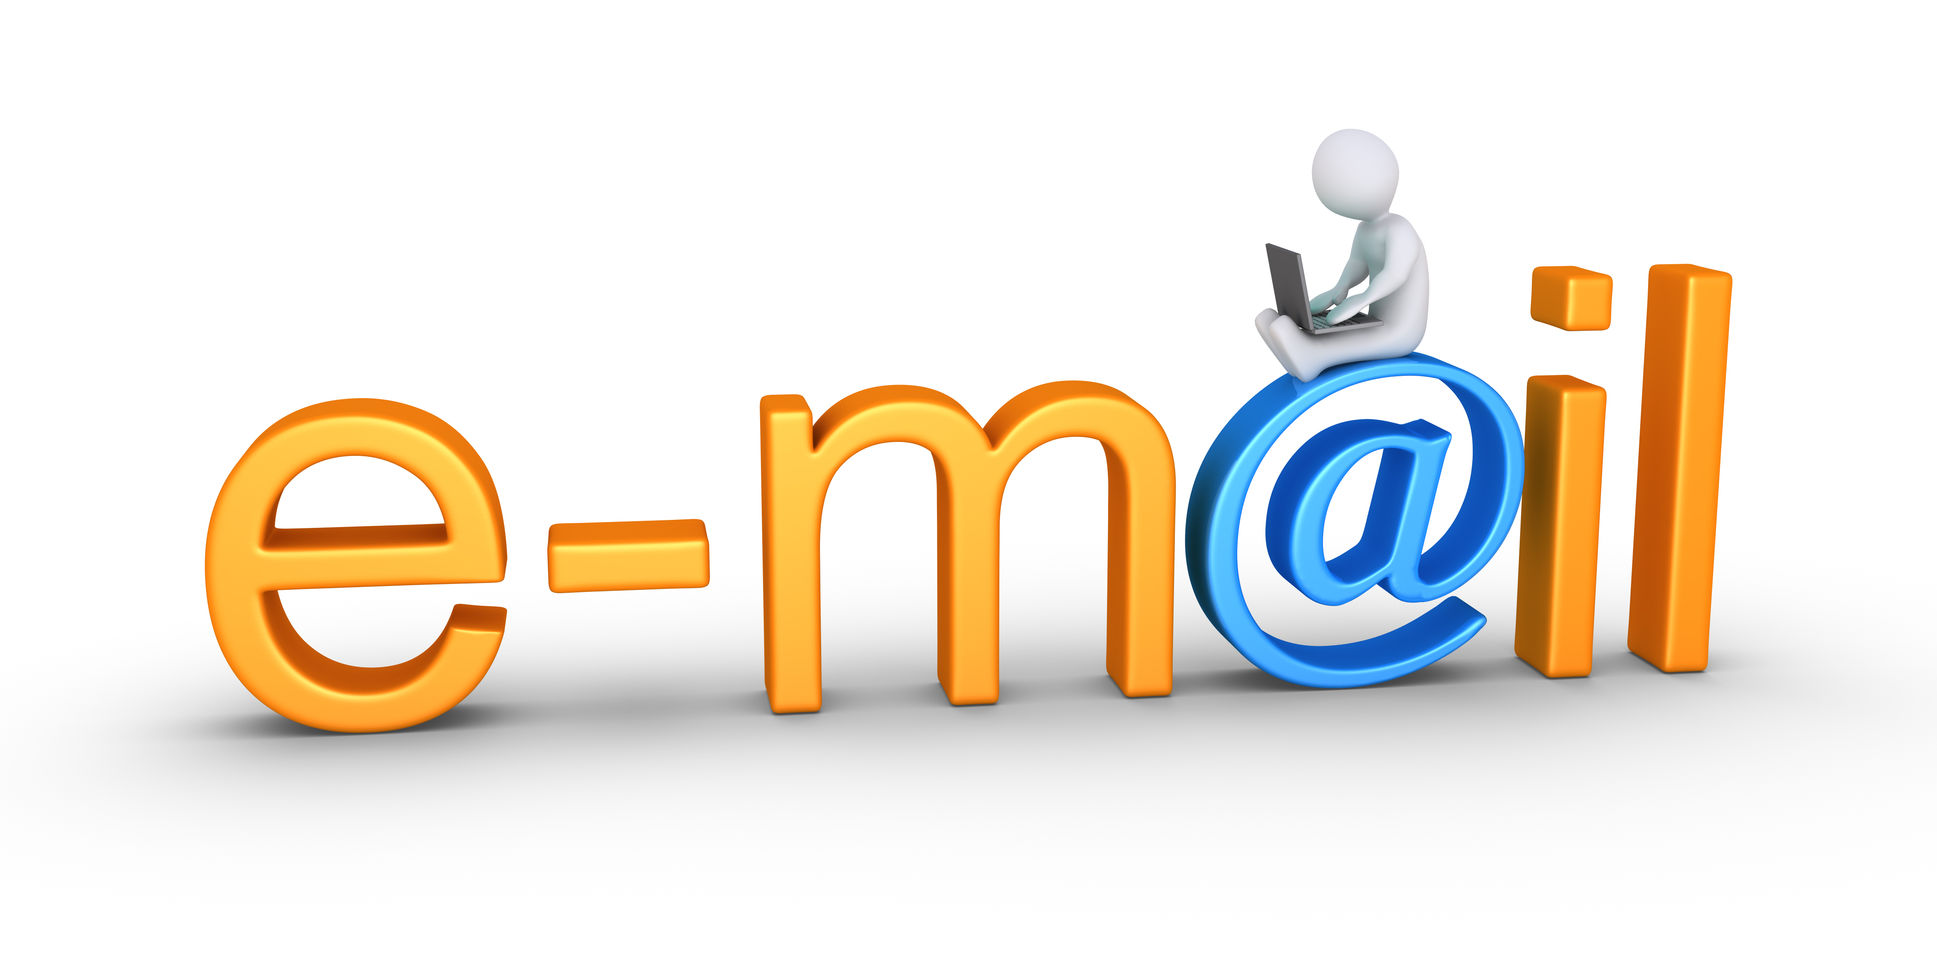 Best Tips To Write An Attractive Email Ever